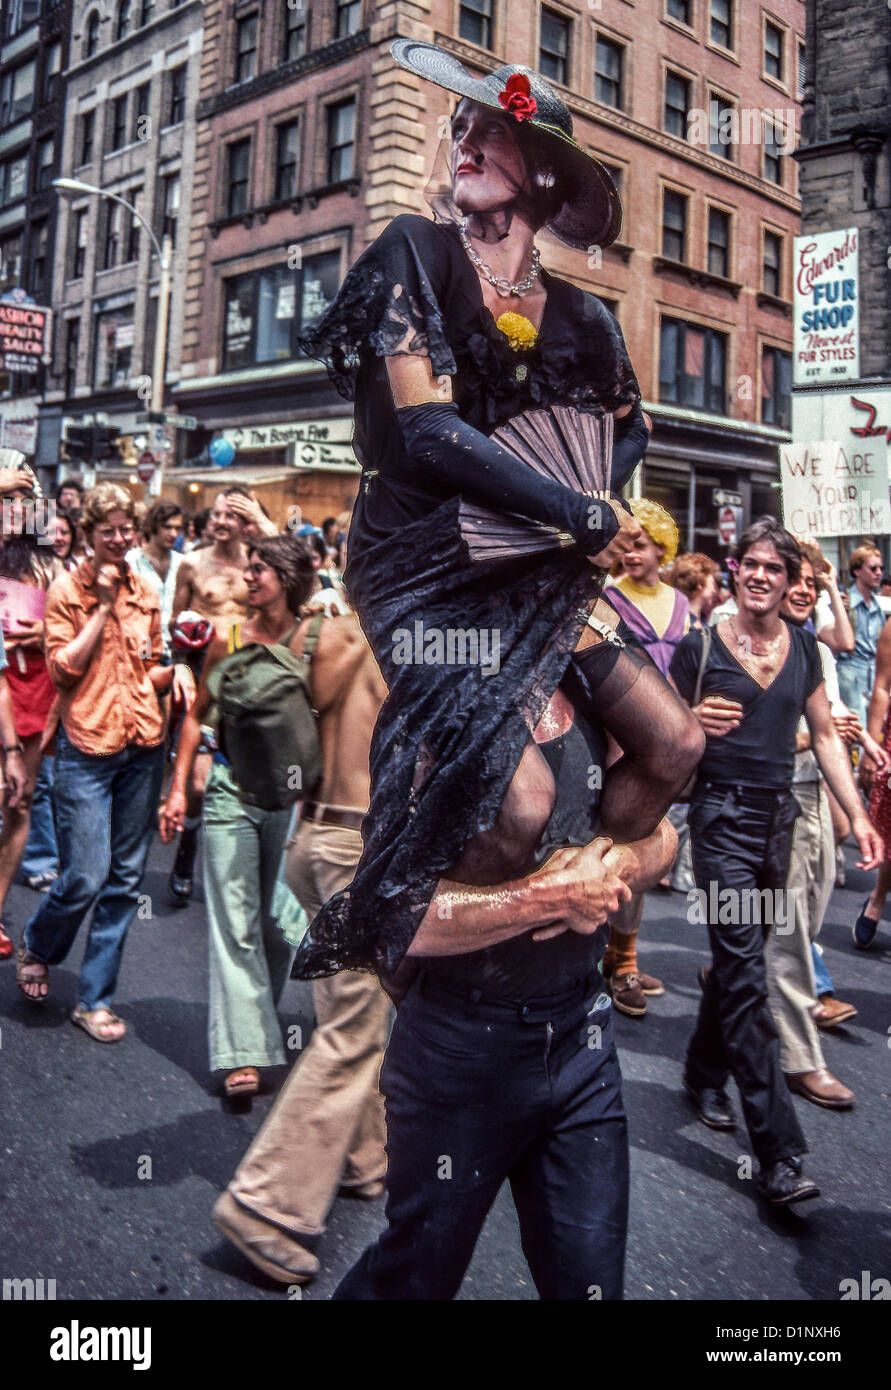 A female impersonater is carried down Boston's Tremont Street during a 1978 Gay Pride parade. - Stock Image